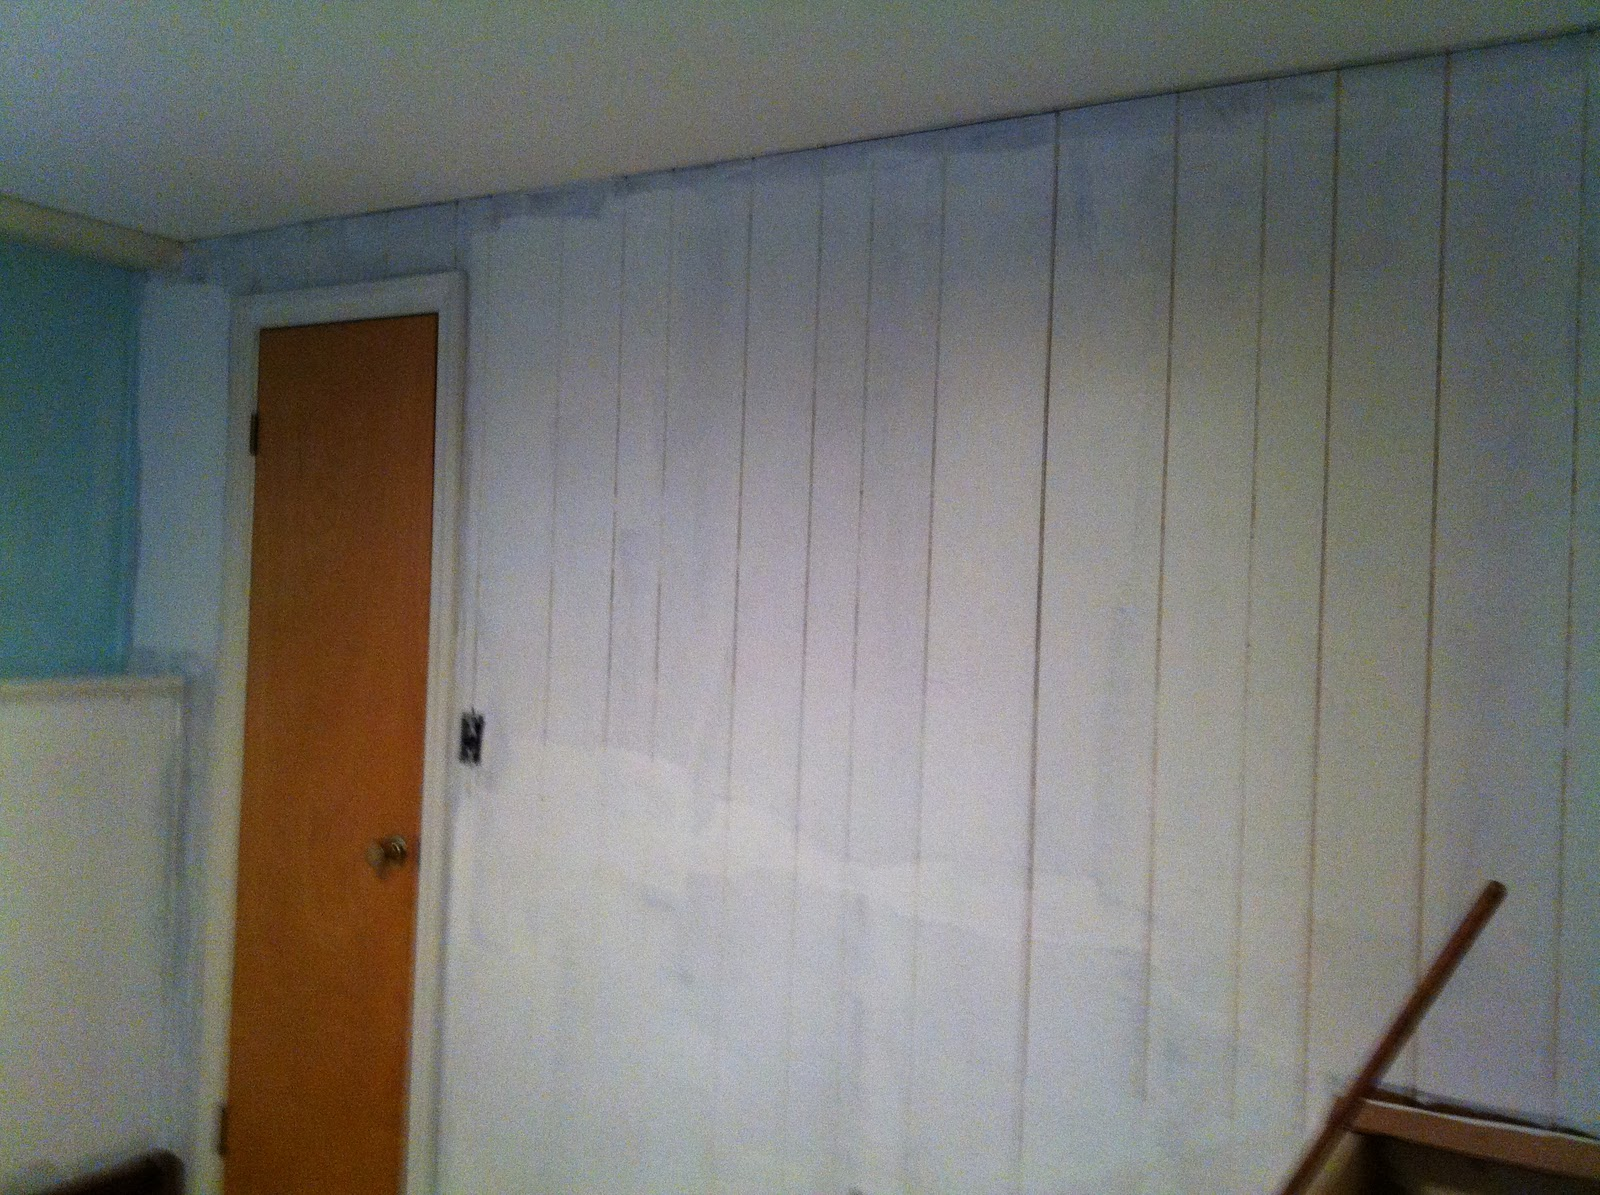 The pfaff pfix painting wood paneling Priming walls before painting